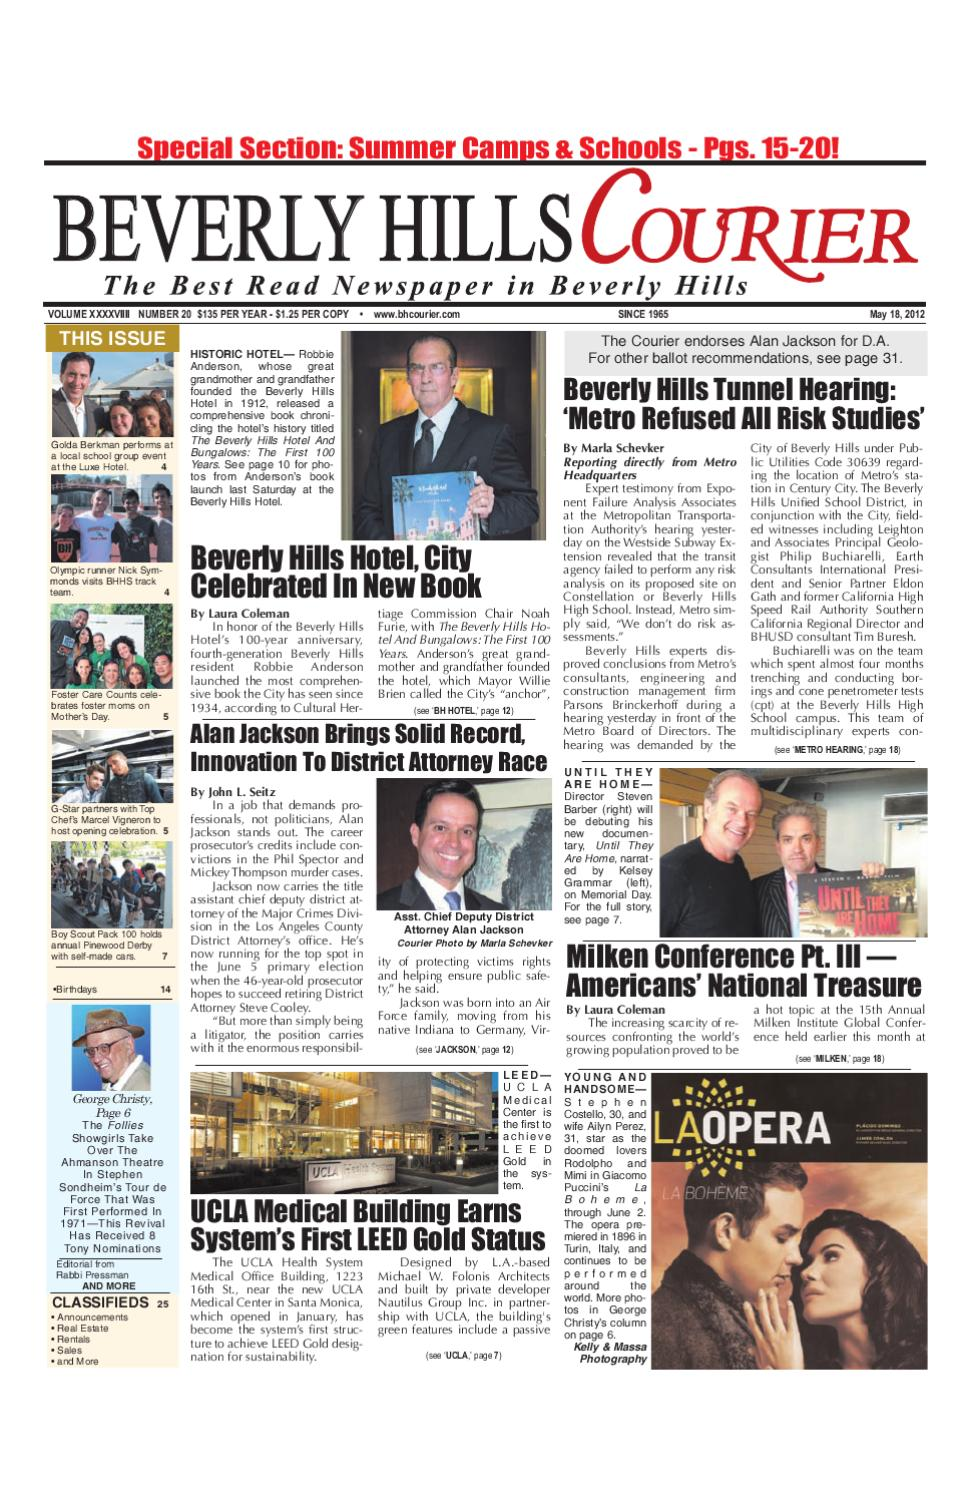 BH Courier 05-18-2012 Edition by The Beverly Hills Courier - issuu